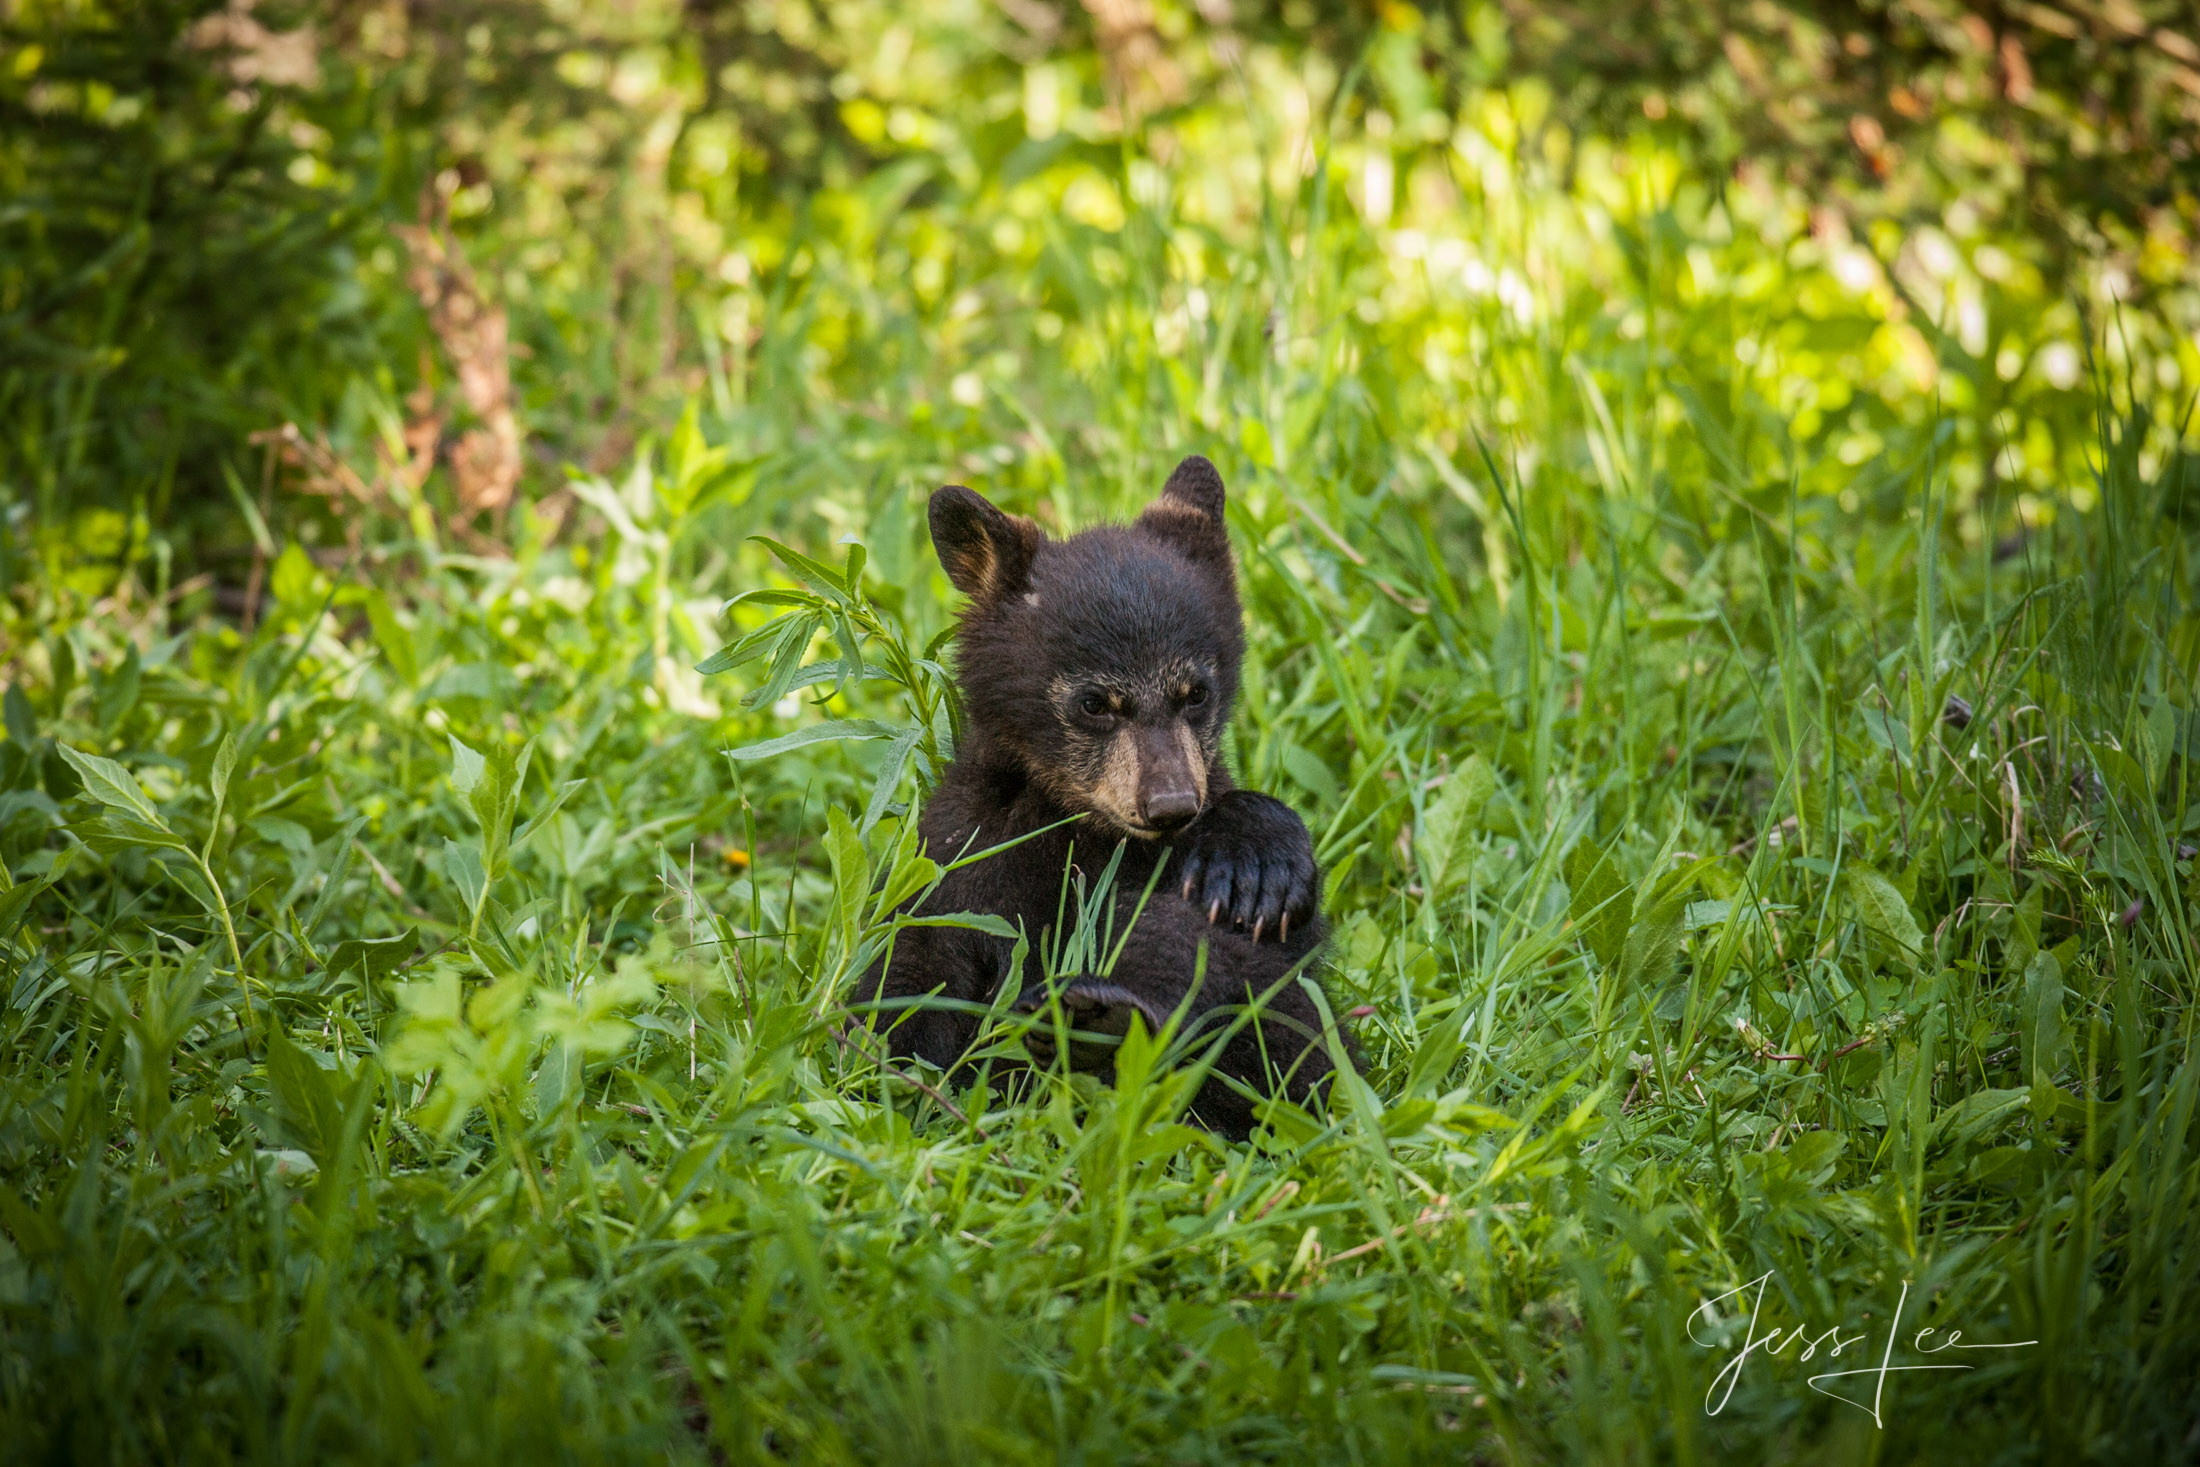 Black bear, Ursus americanus, North America, Picture, photo